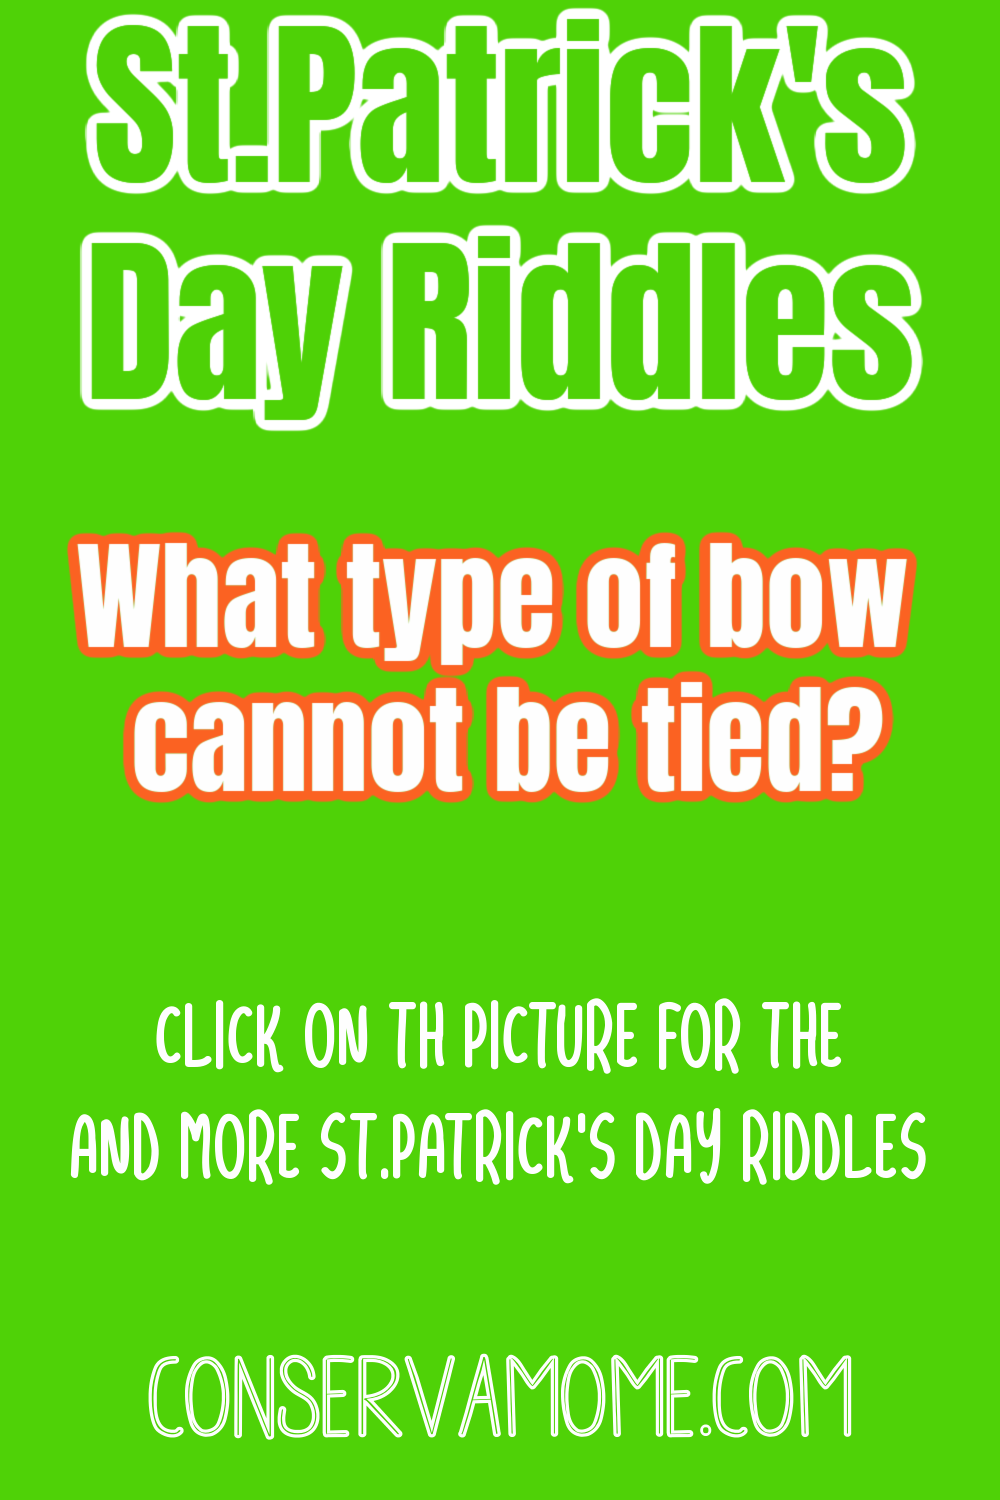 St.Patrick's Day Riddle